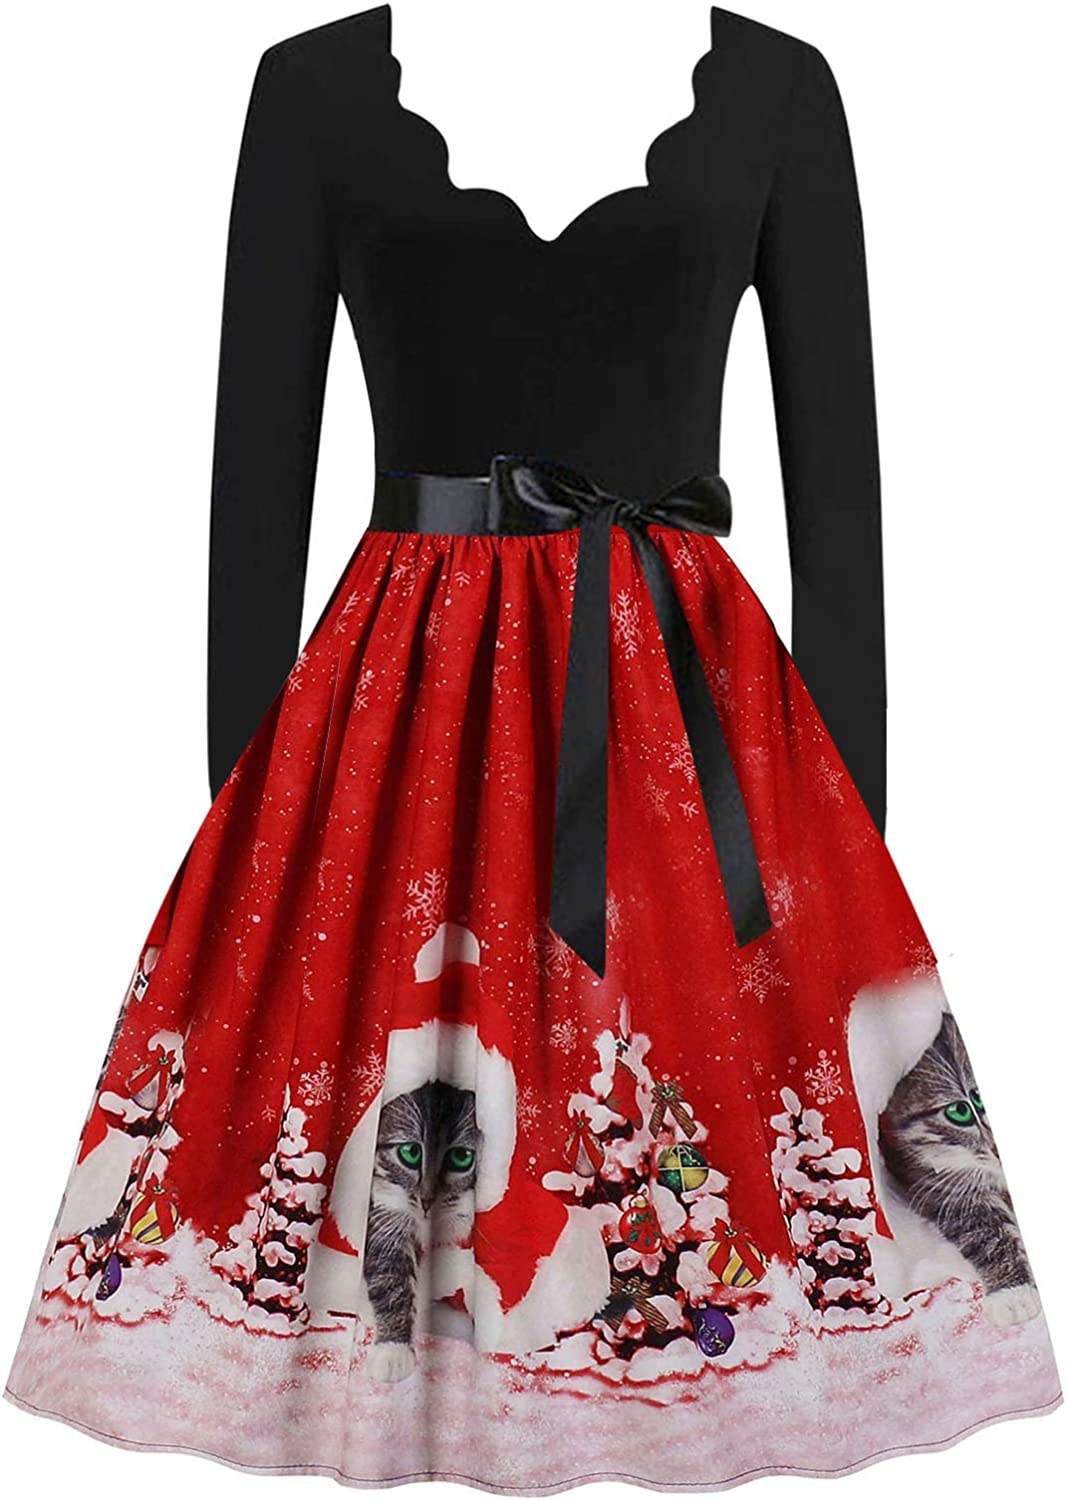 Tigivemen Christmas Dress for Women Toddler Girls, Xmas Tree Printed Dress A-line Vintage Cocktail Holiday Party Dress